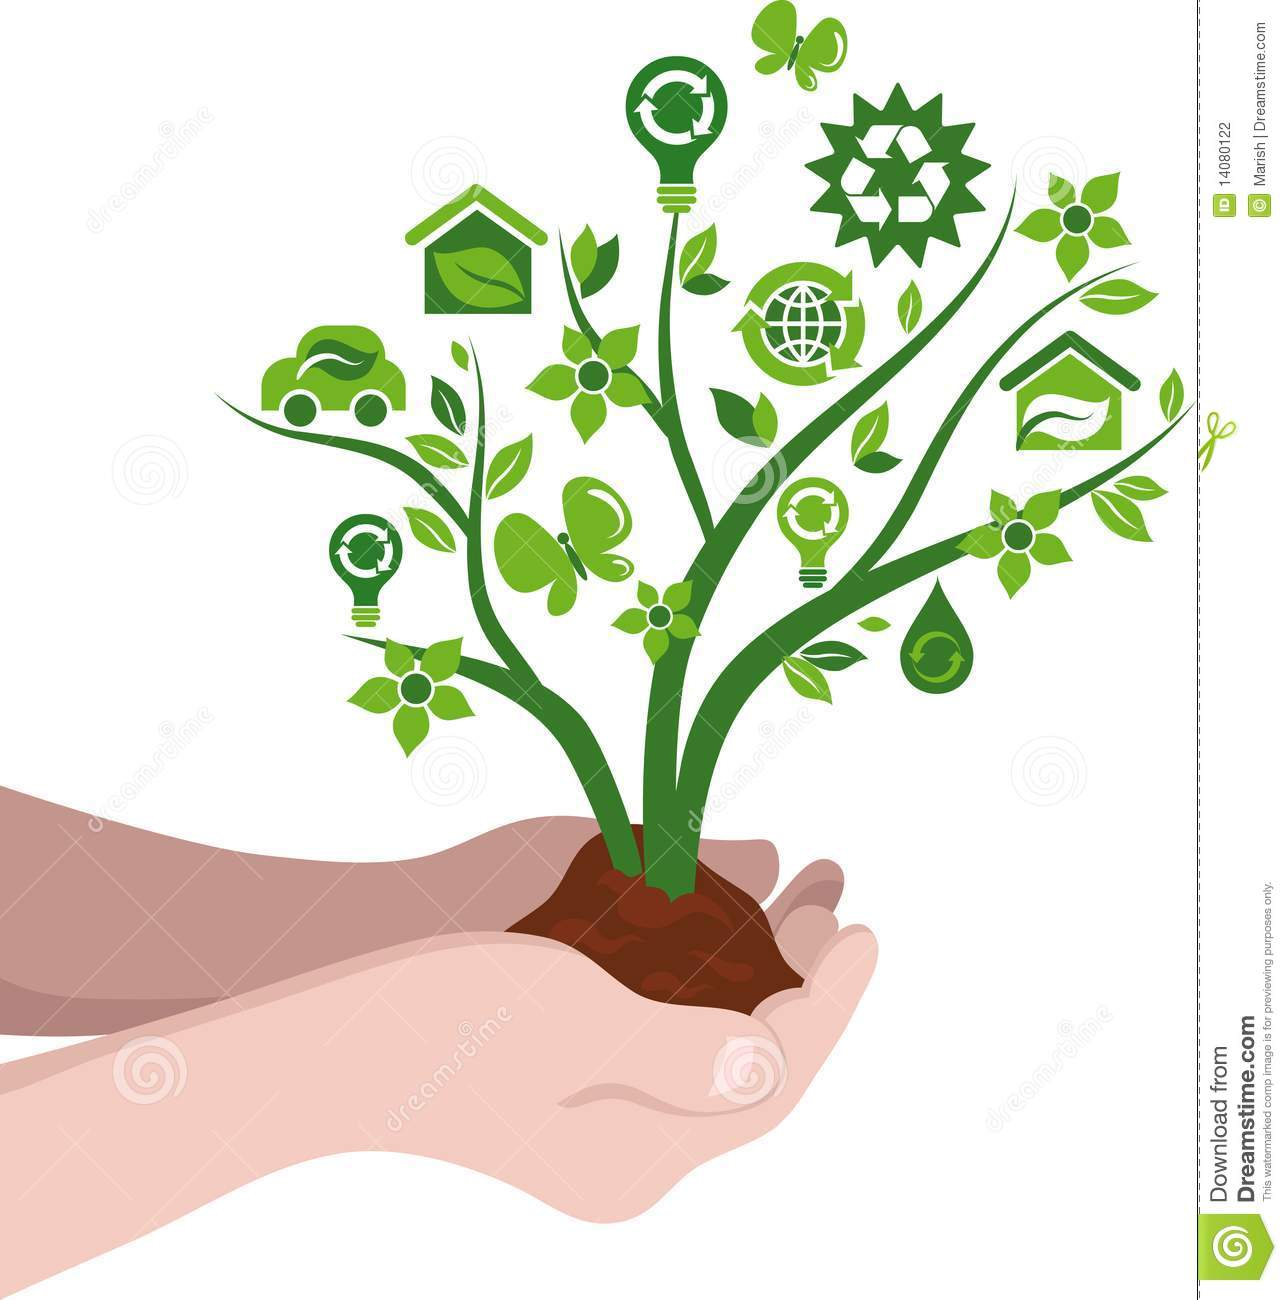 Planting Trees Eco Concept Stock Vector. Illustration Of